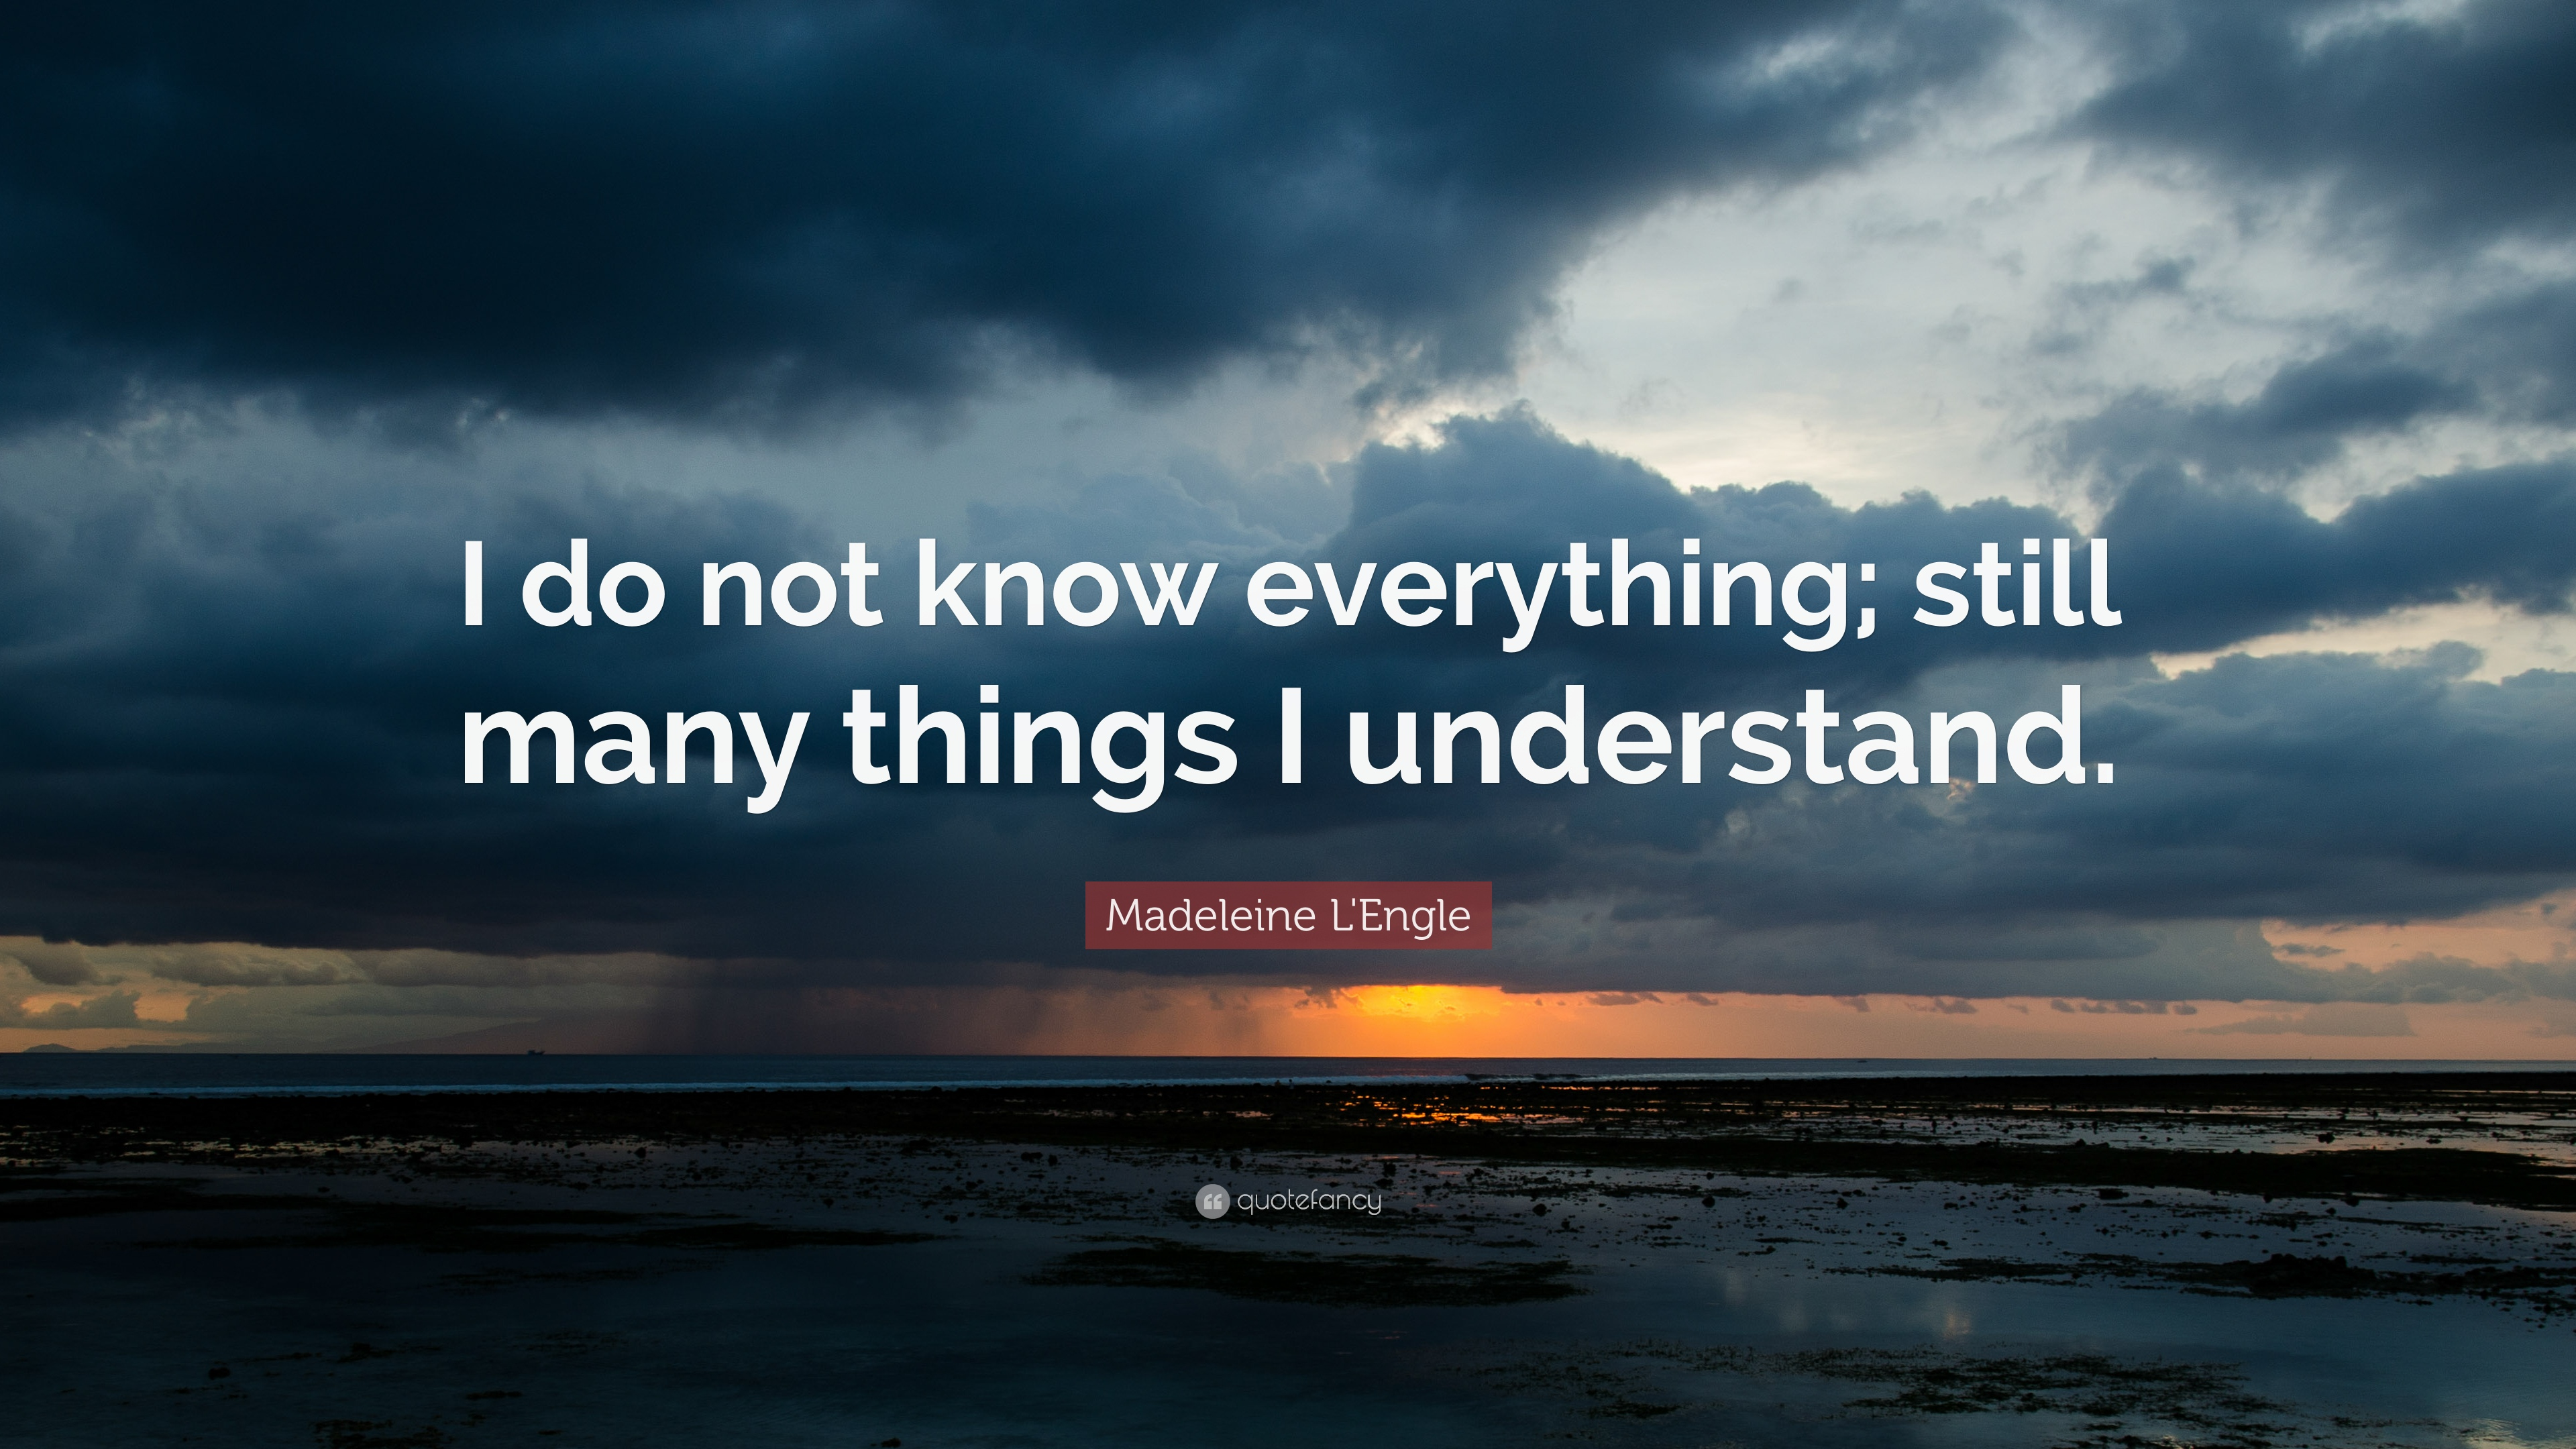 Madeleine L'Engle Quotes (100 Wallpapers)